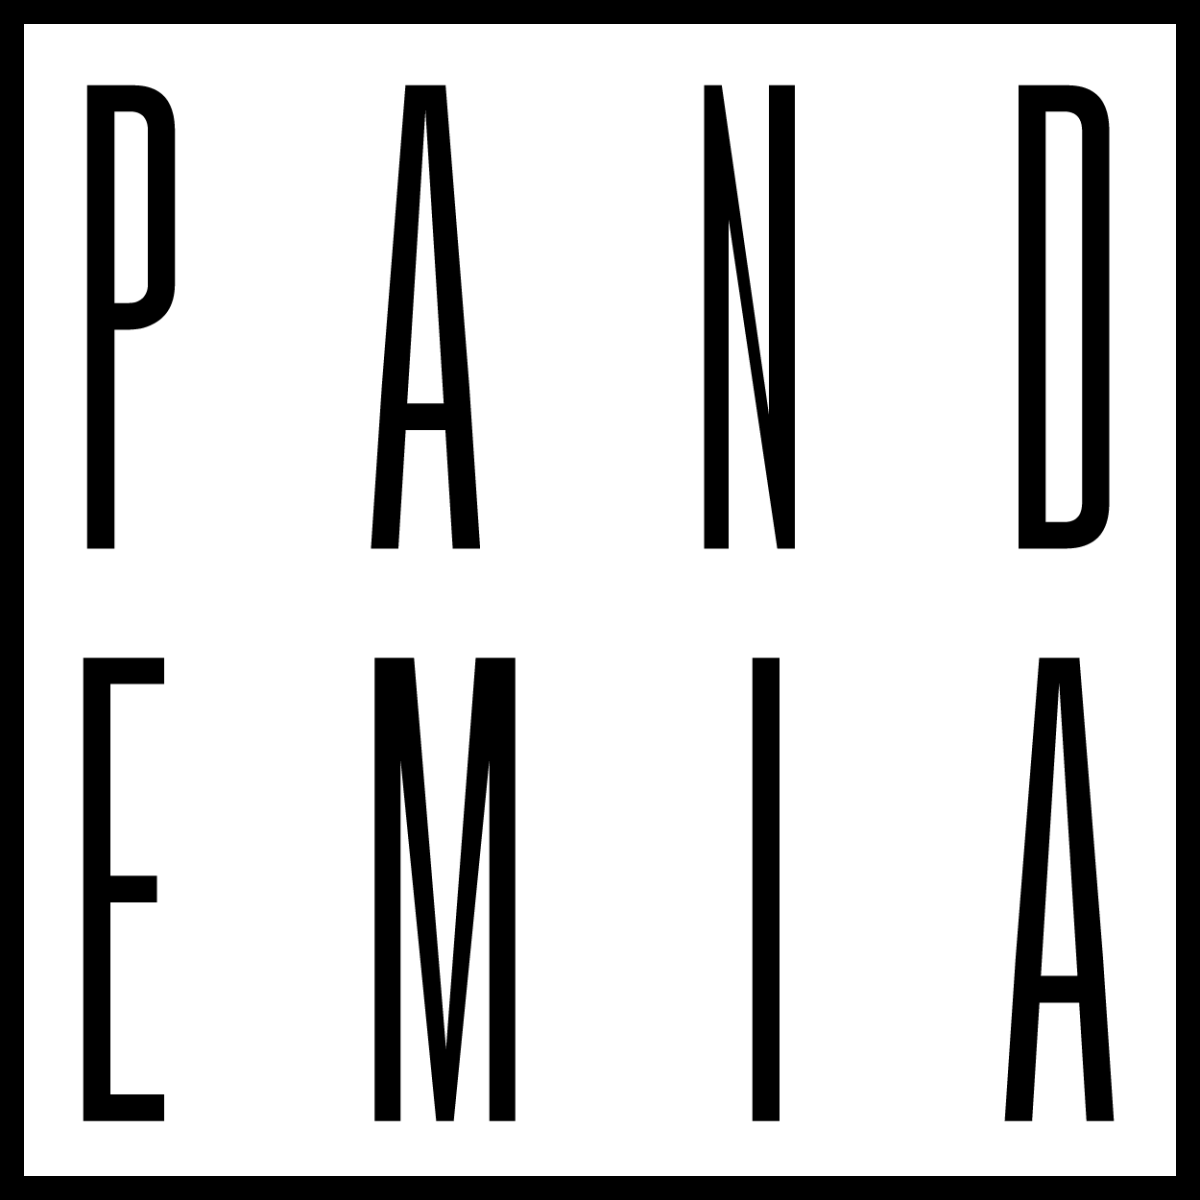 PANDEMIA | A year later…